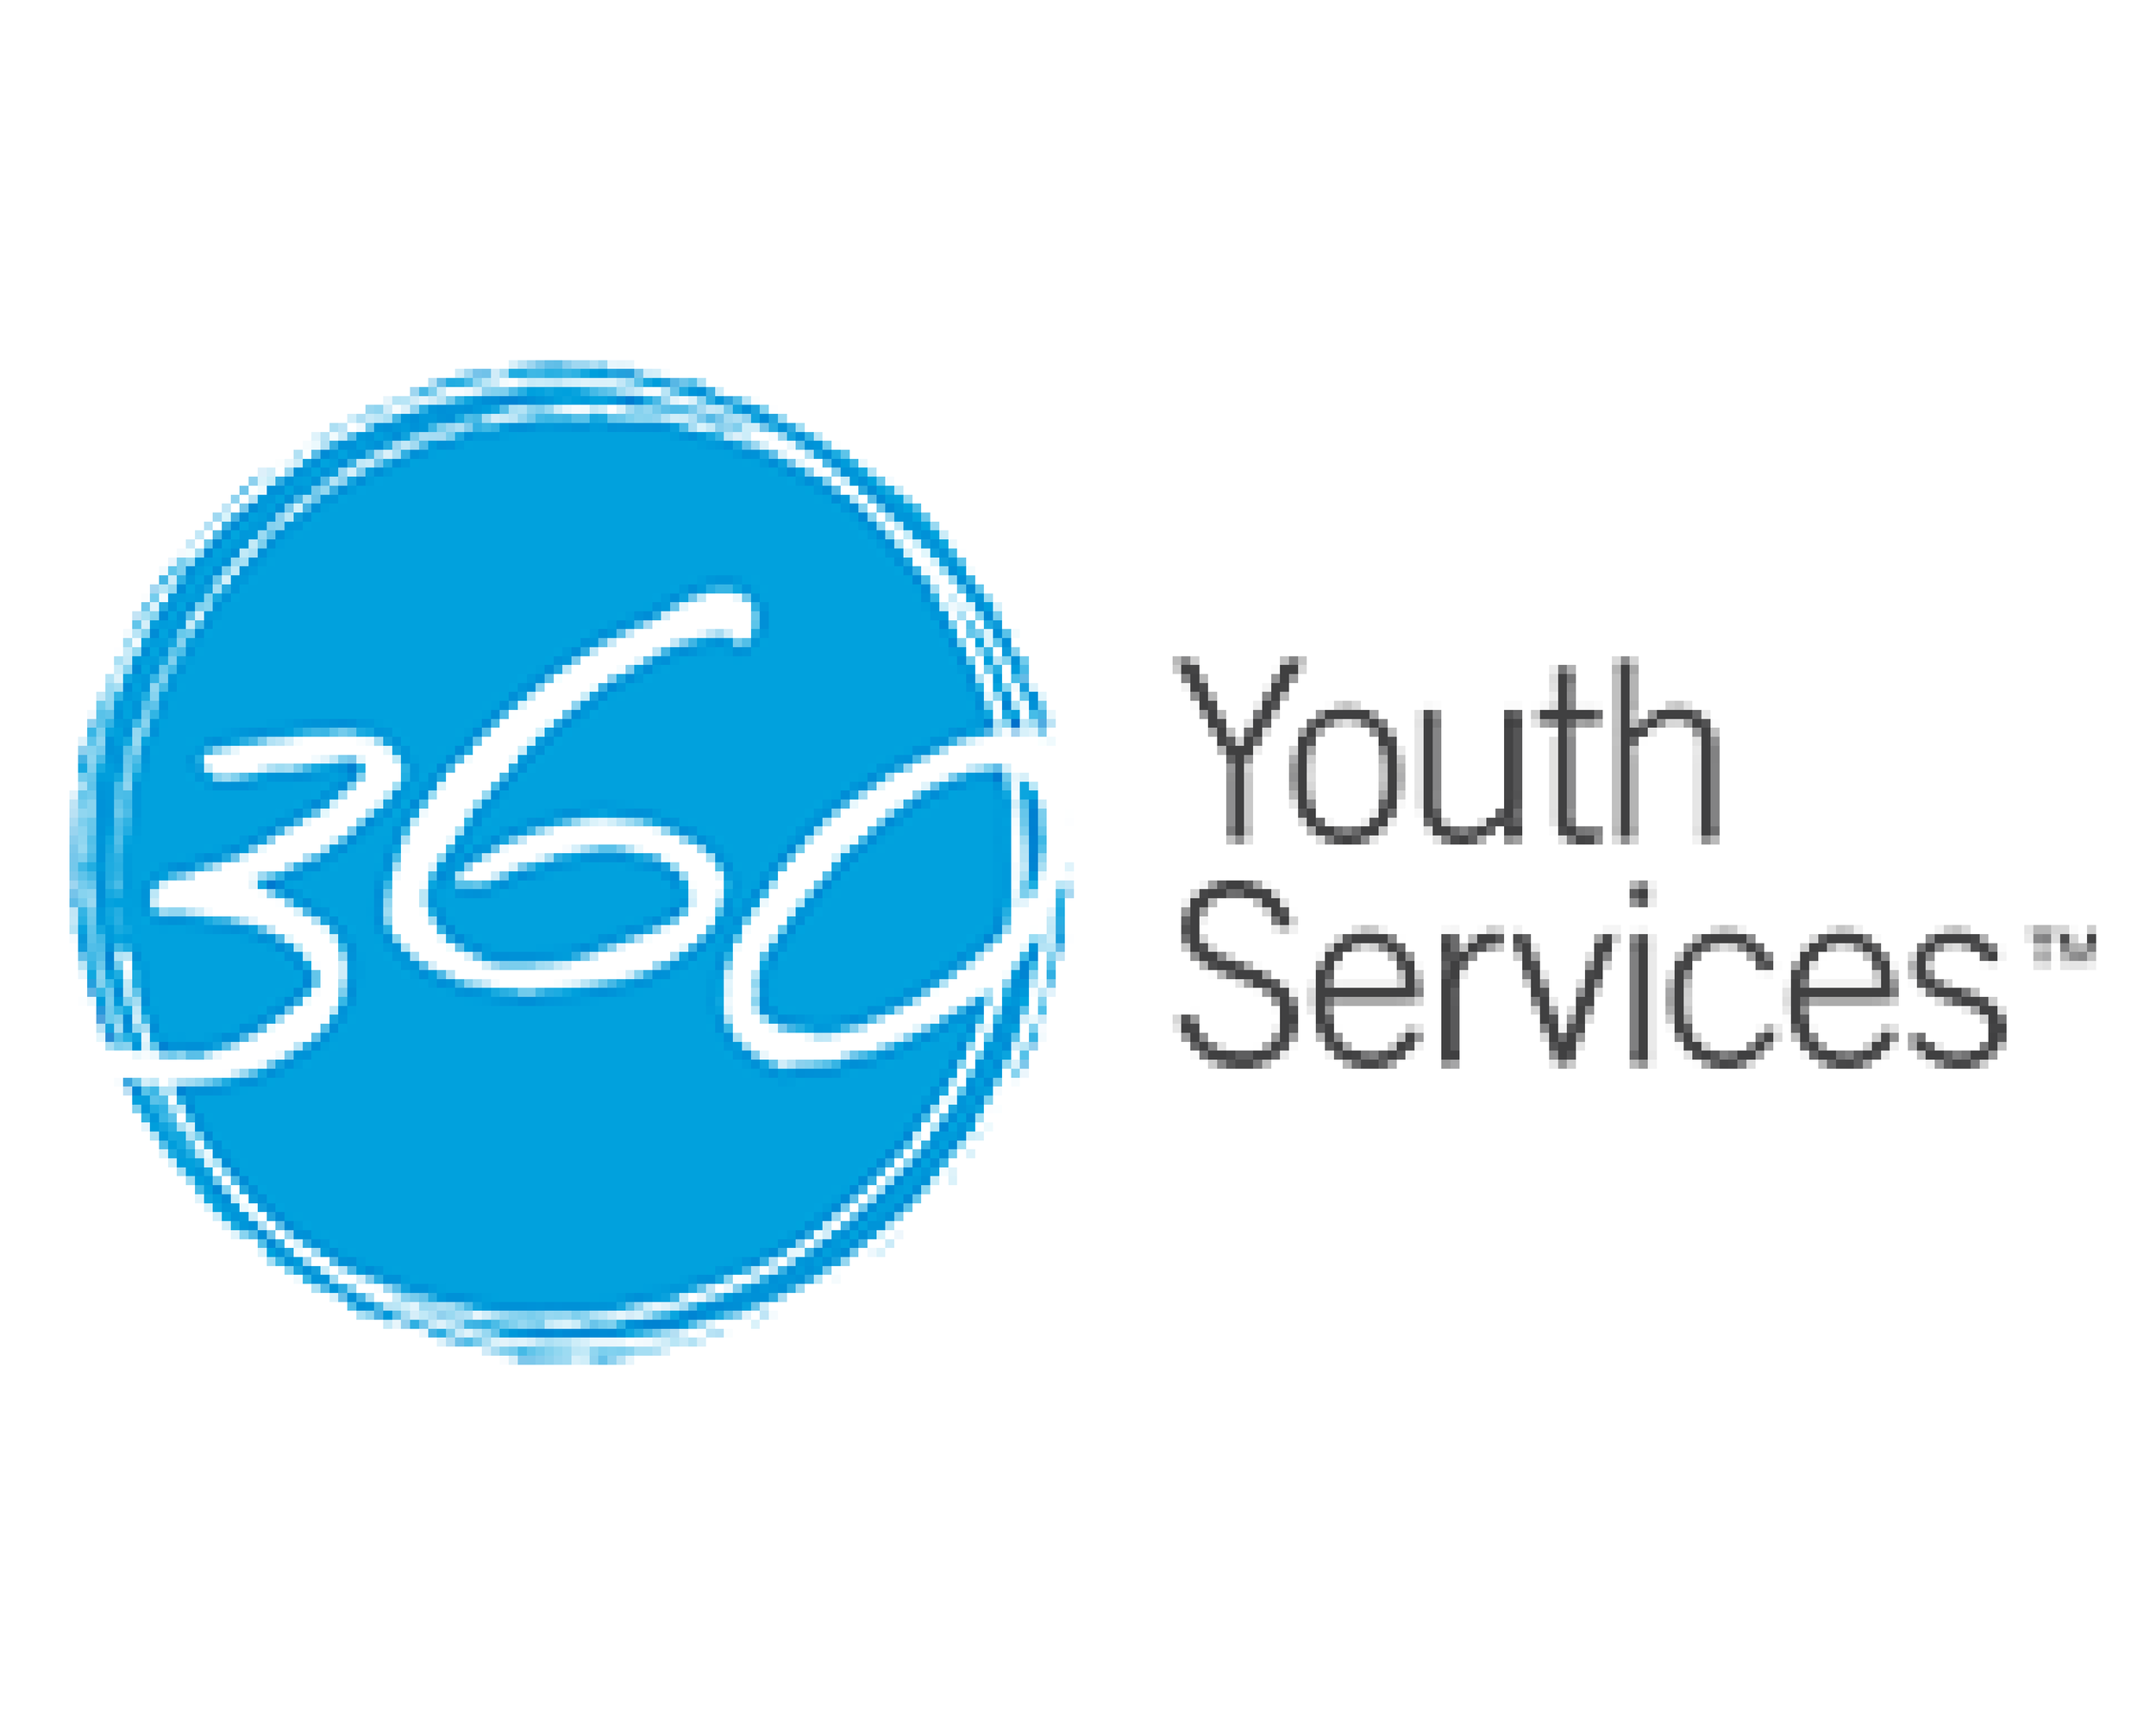 Counseling, Prevention and Mentoring Programs - 360 Youth Services provides counseling services as varied as the issues that arise for those having difficulty at home, school, or in the community. Trained therapists offer a variety of professional counseling services for school-aged youth and families, as well as young adults. Including Educational groups for youth of all ages and their parents.